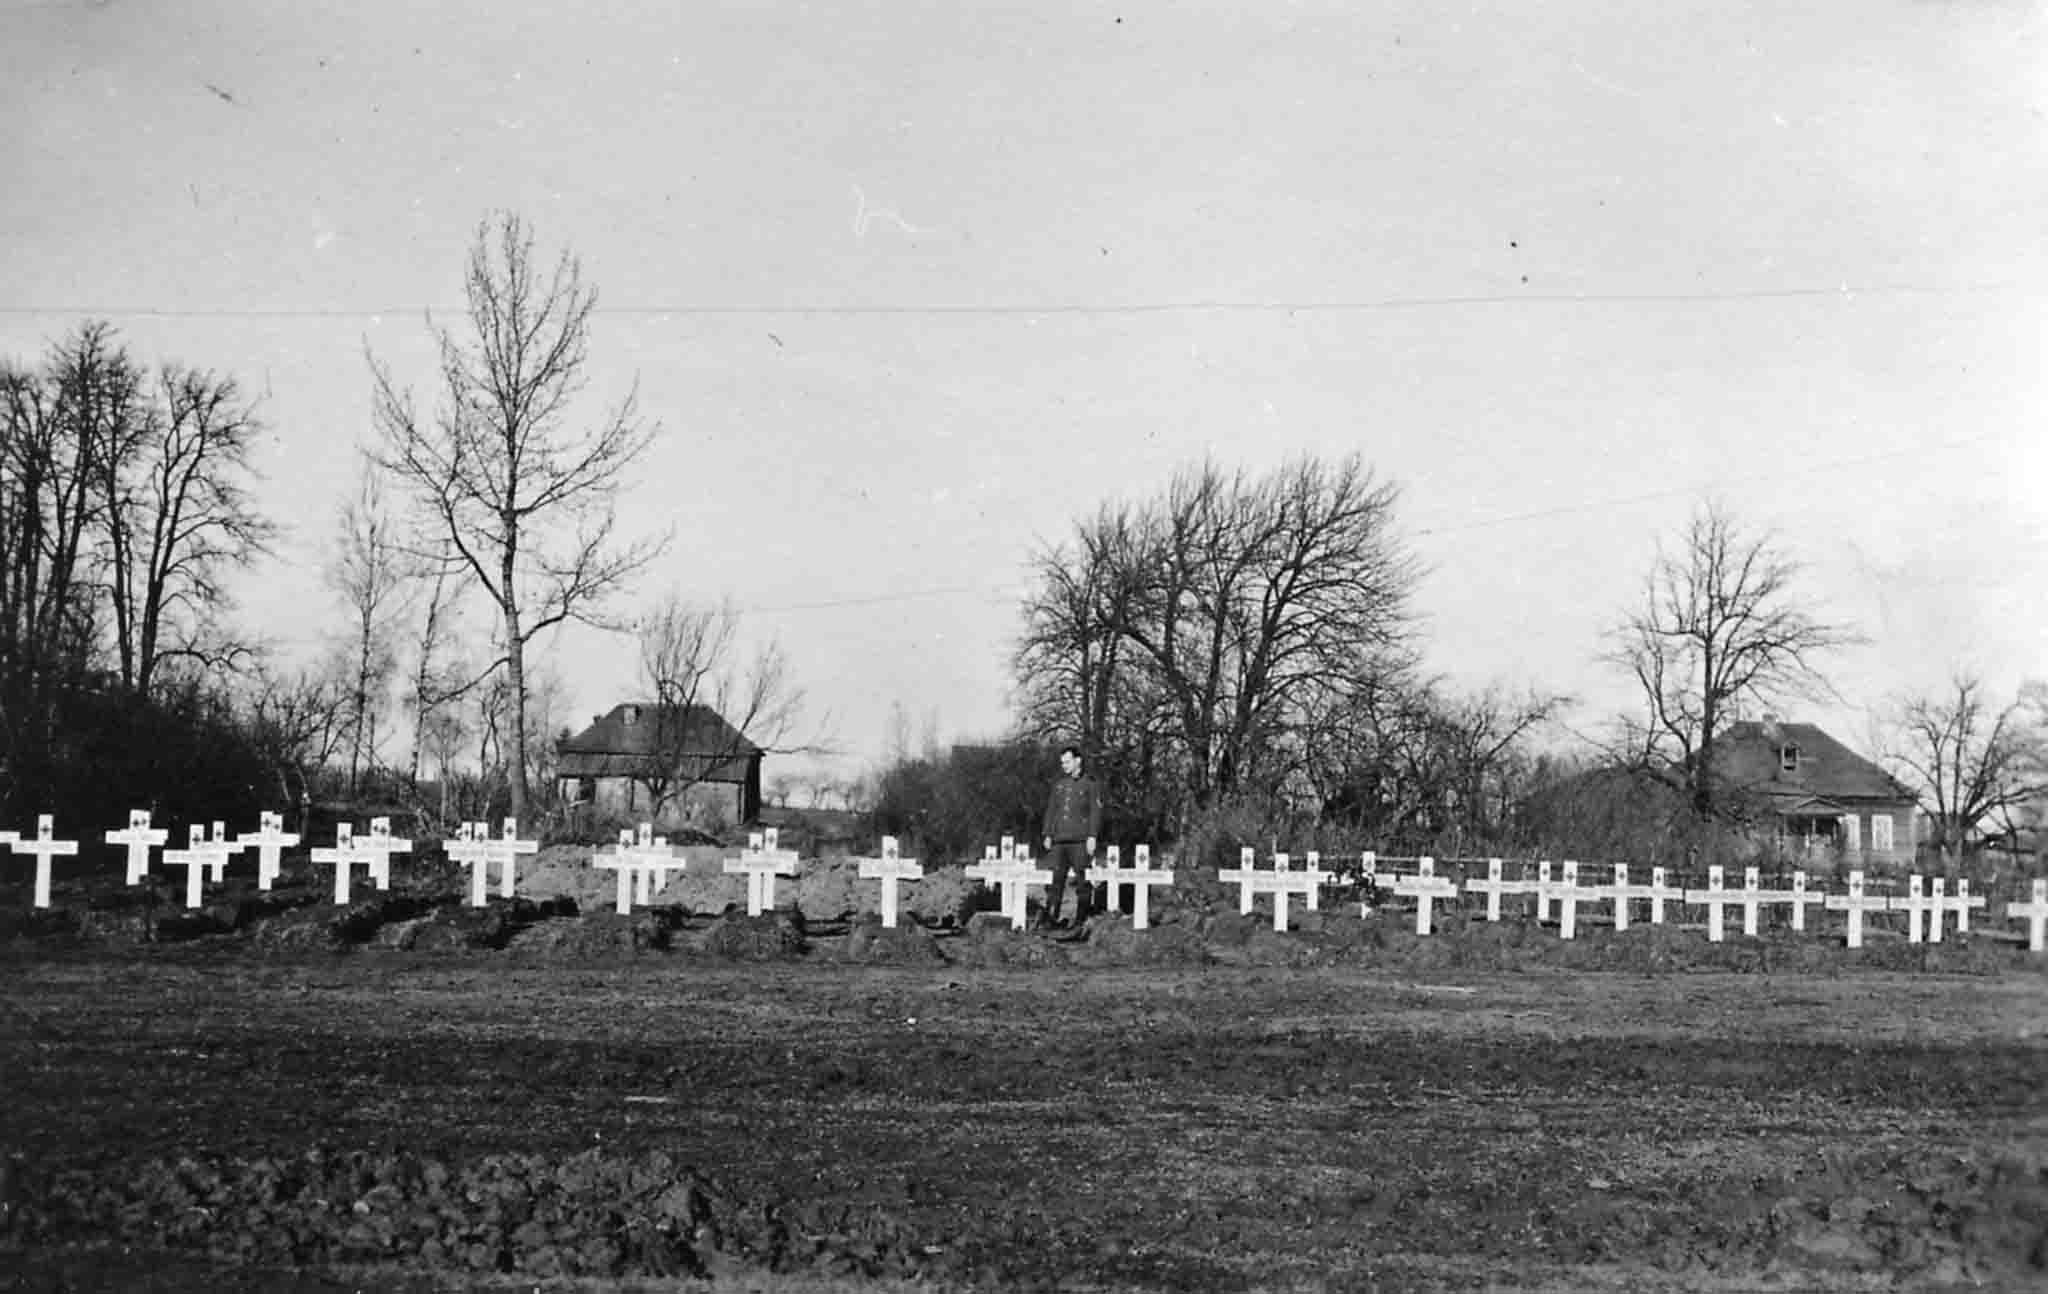 Cemetery of German soldiers